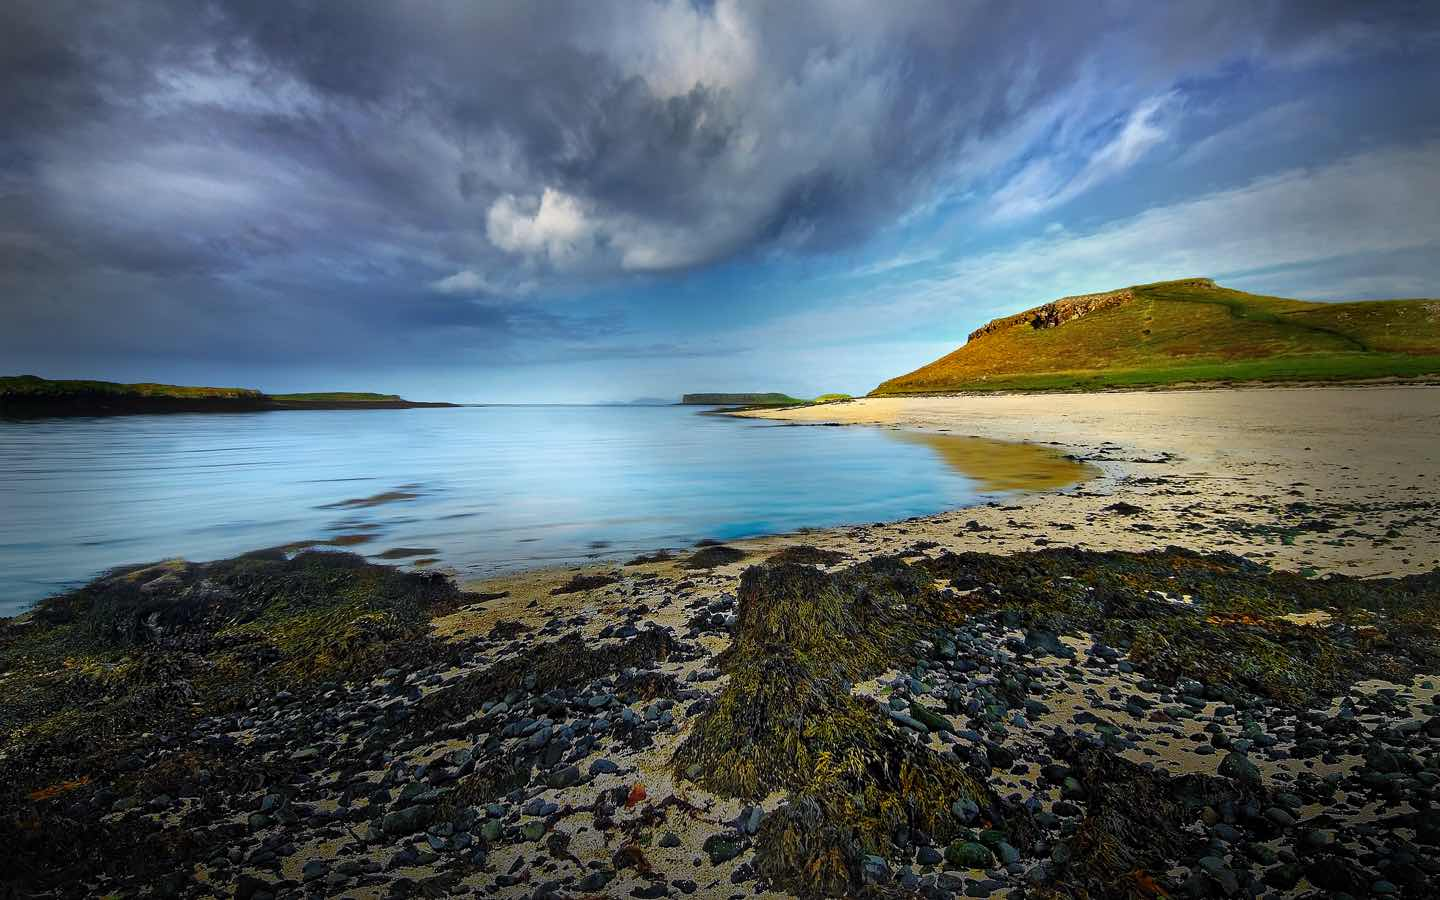 The Coral Beach, Isle of Skye